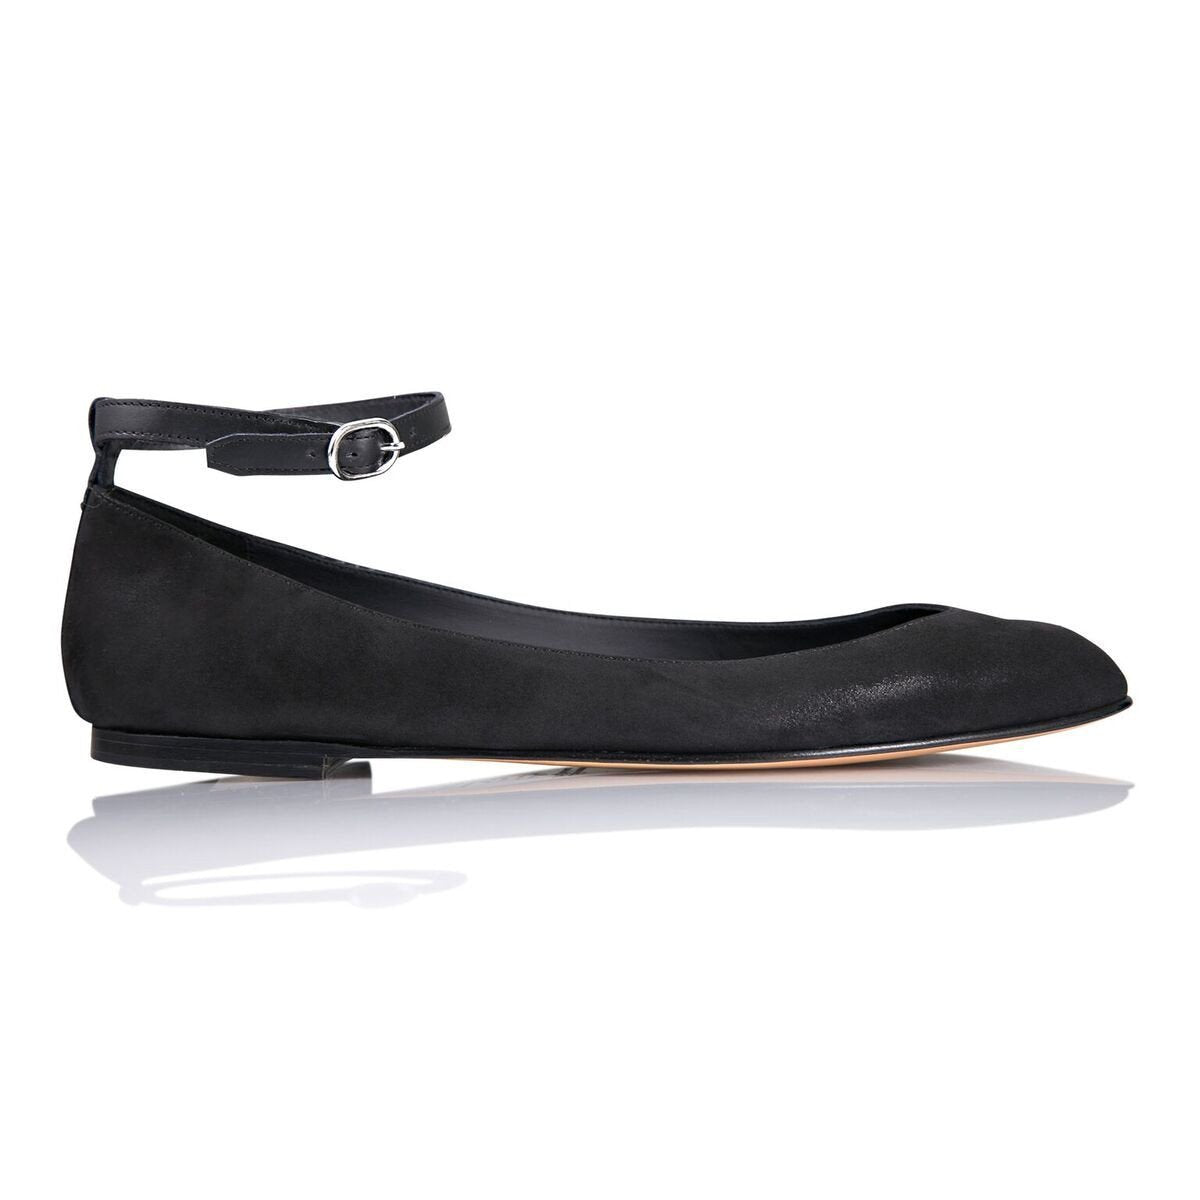 TORINO - Hydra Nero, VIAJIYU - Women's Hand Made Sustainable Luxury Shoes. Made in Italy. Made to Order.